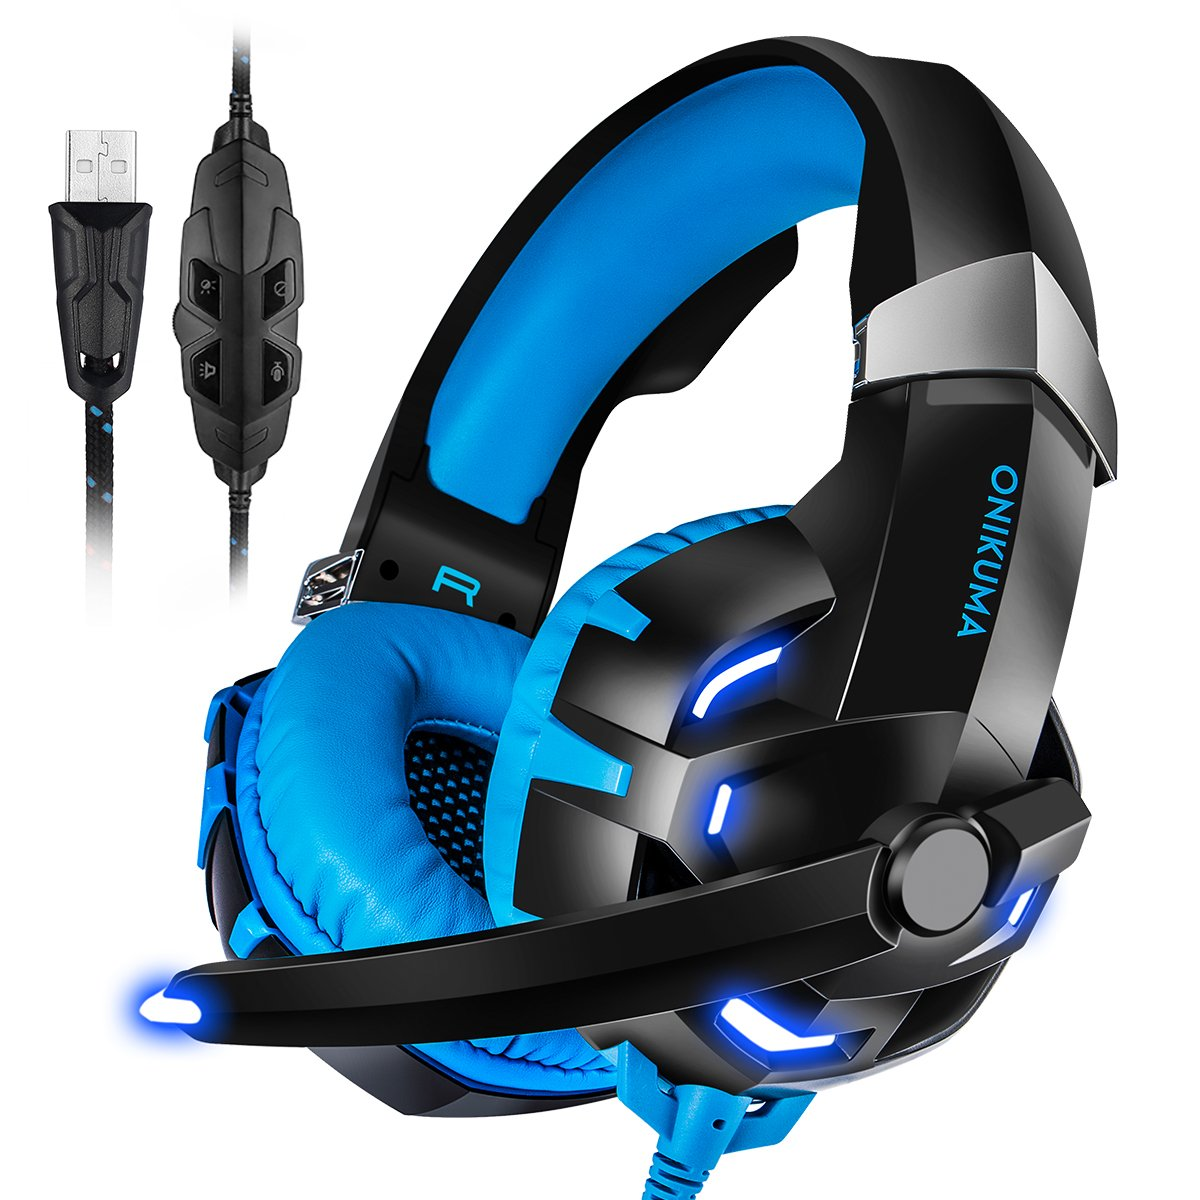 c0b8064a76d Get Quotations · PC Gaming Headset, ONIKUMA 7.1 Surround Sound USB Gaming  Headset, Crystal Clear Sound with